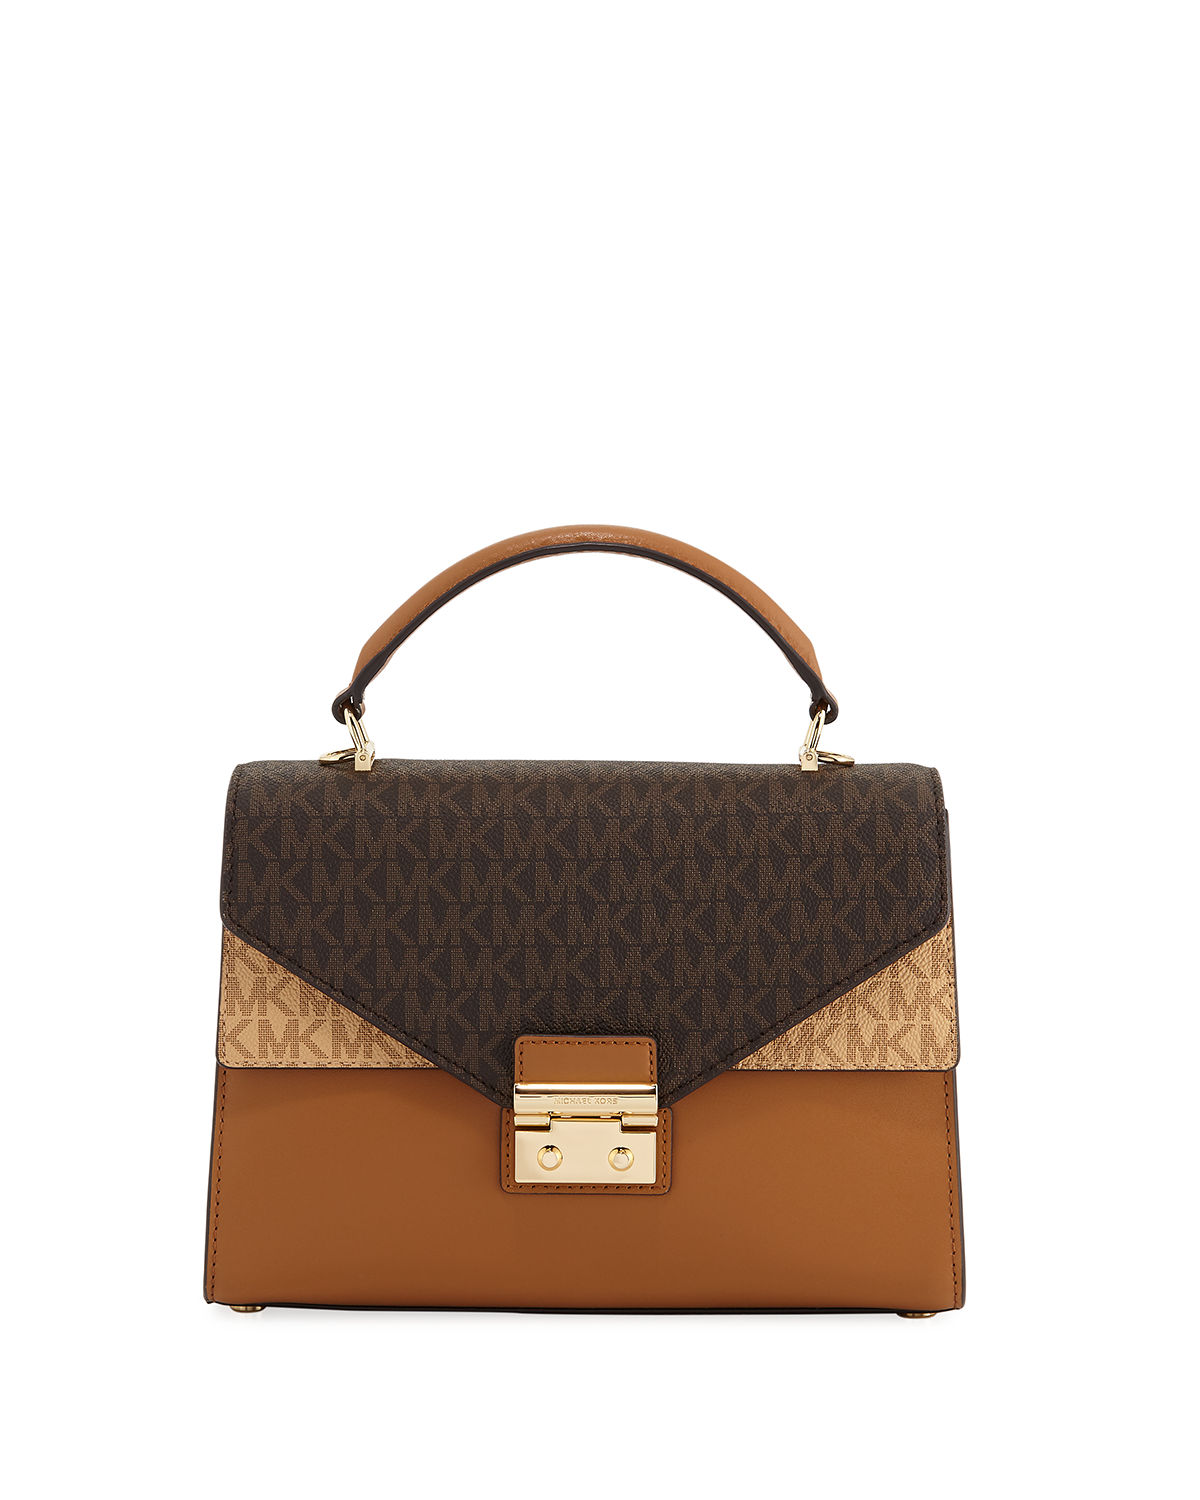 Sloan Medium Double Flap Satchel Bag